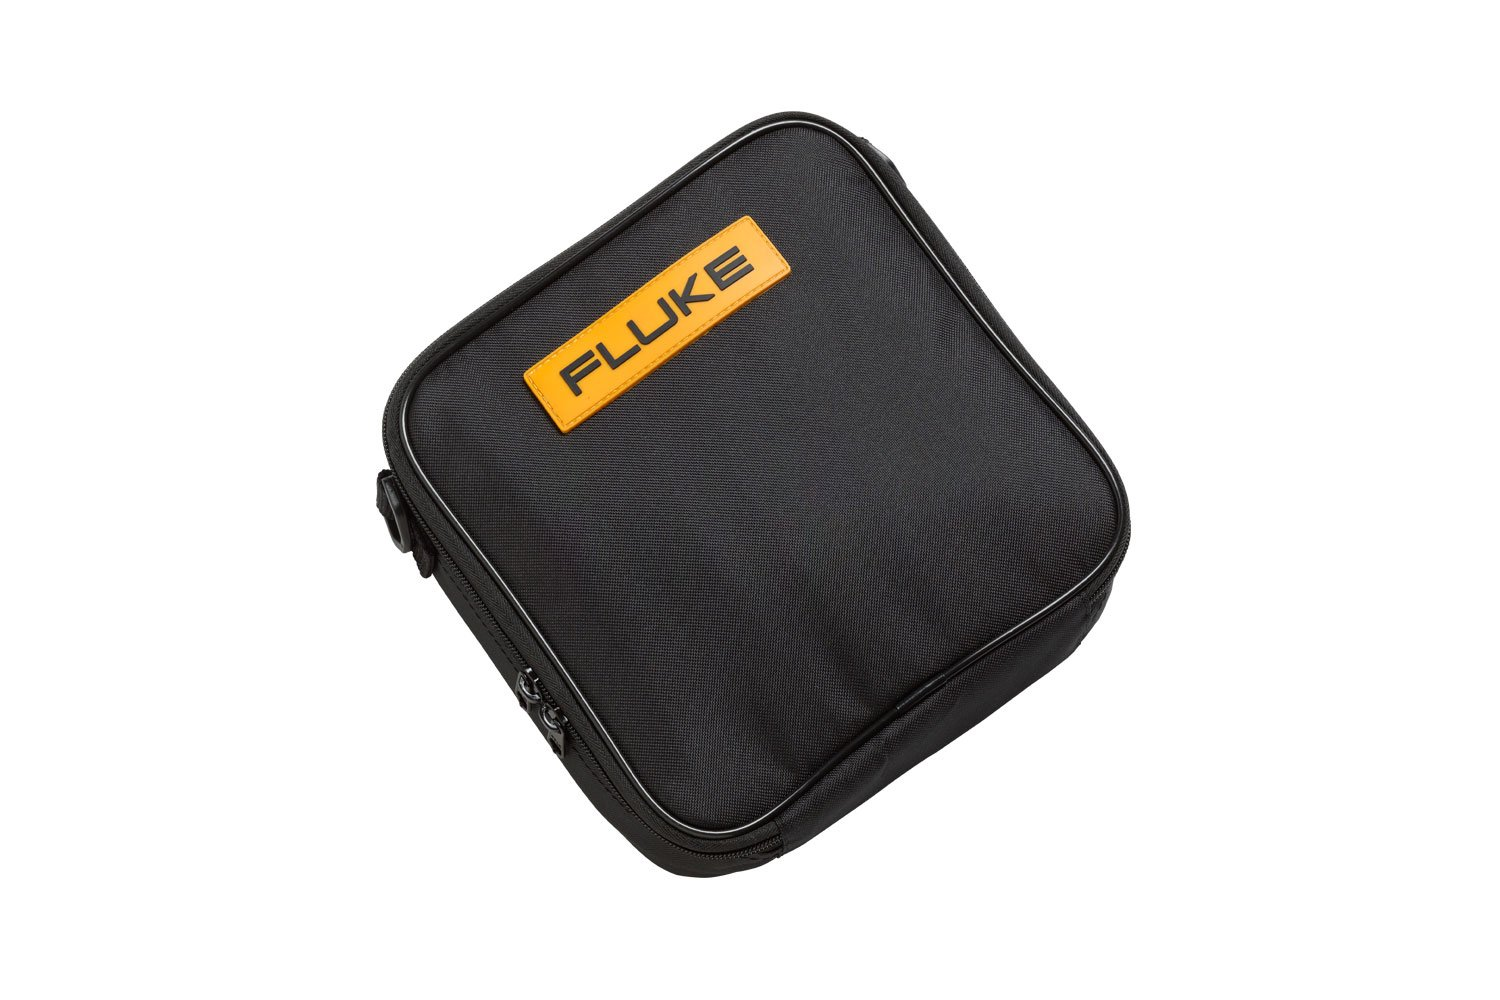 Fluke C116 Carrying Case Polyester Black/yellow